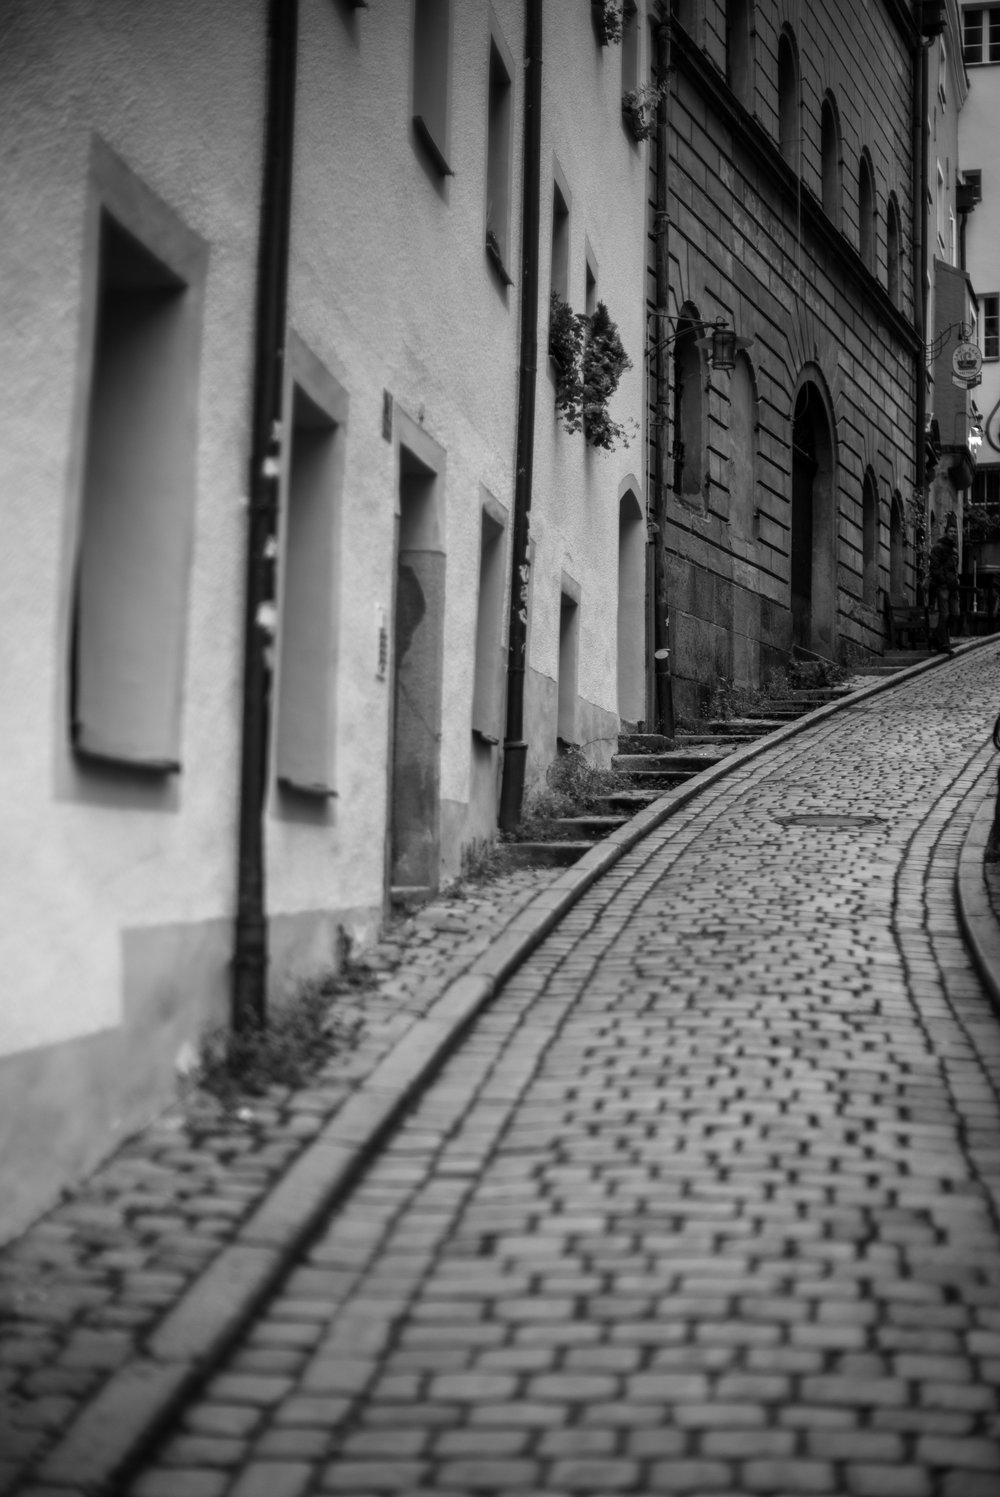 Vanishing street in Regensburg, Germany